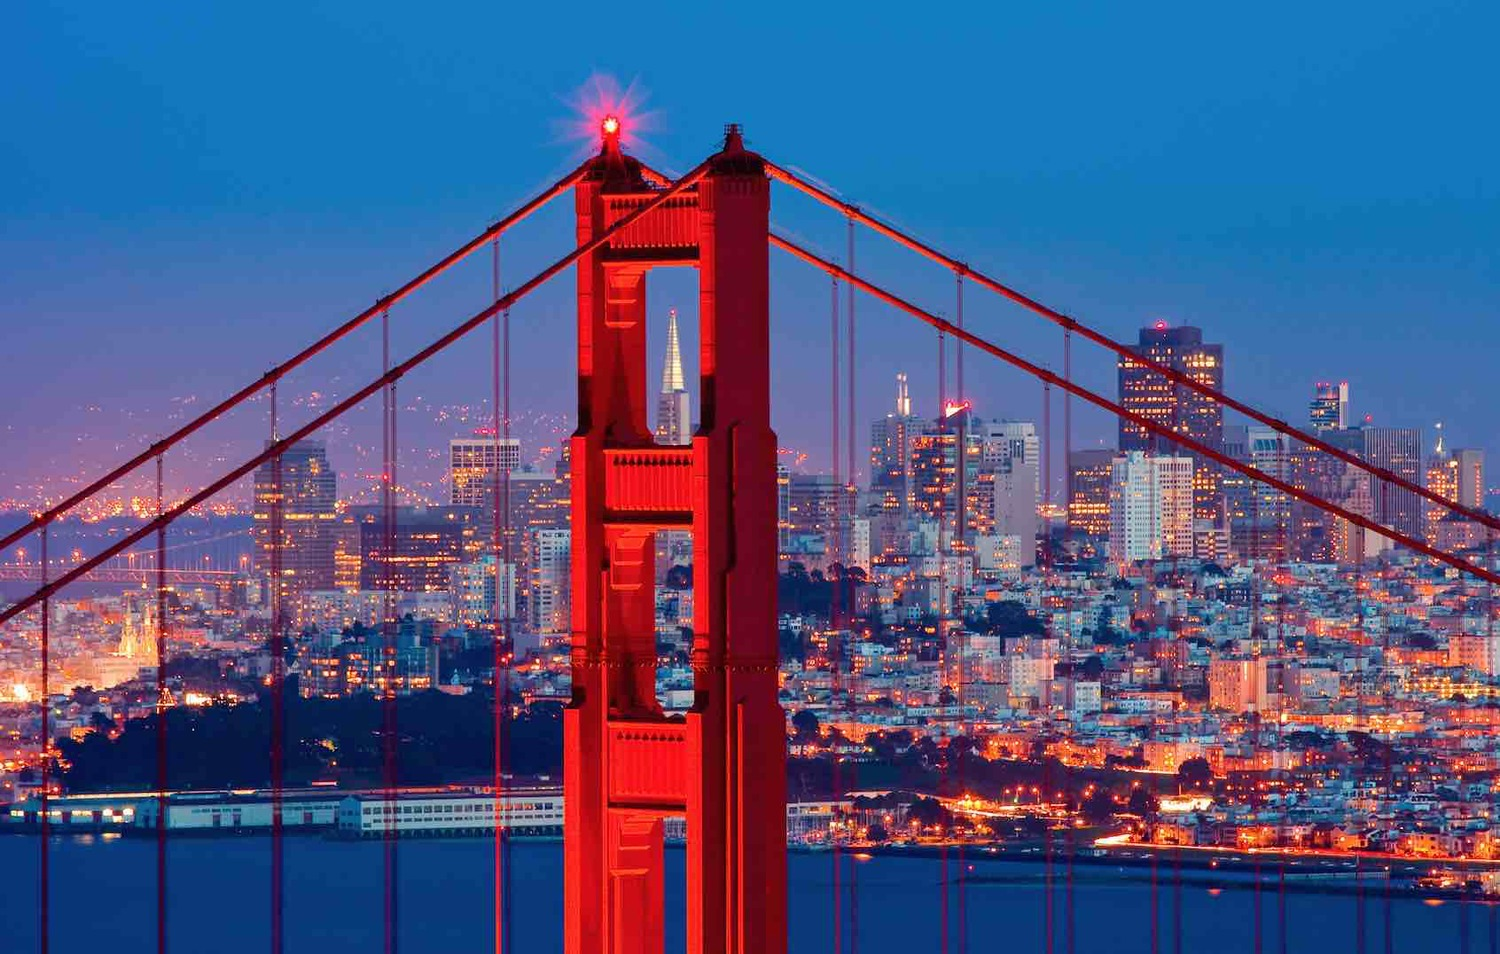 San Francisco Gate  >> Hotels With Best View Of Golden Gate Bridge In San Francisco The